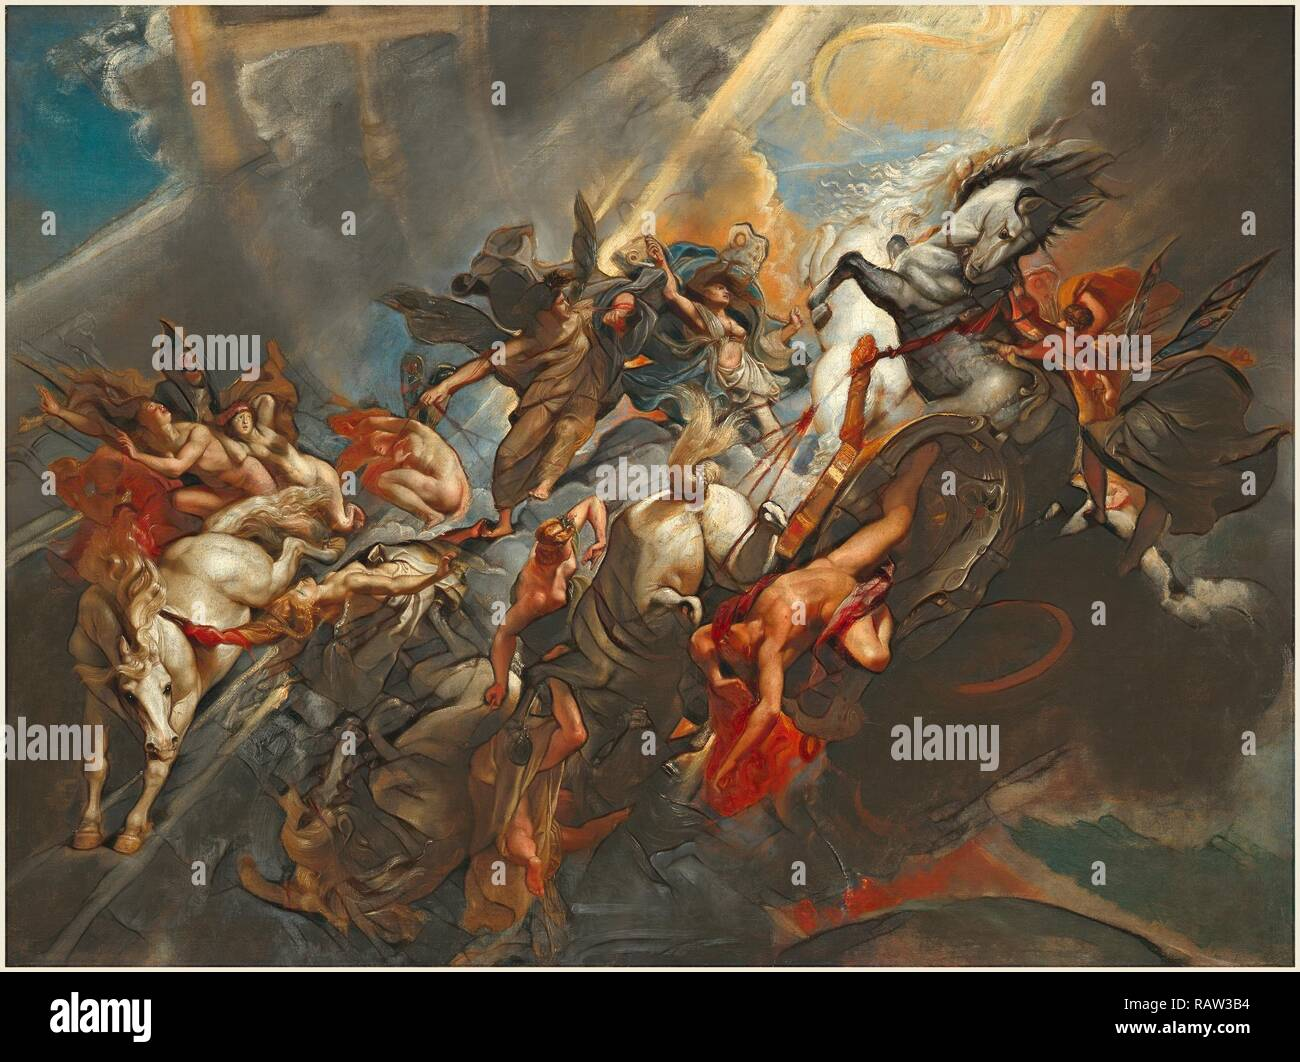 Sir Peter Paul Rubens, Flemish (1577-1640), The Fall of Phaeton, c. 1604-1605, probably reworked c. 1606-1608, oil on reimagined - Stock Image